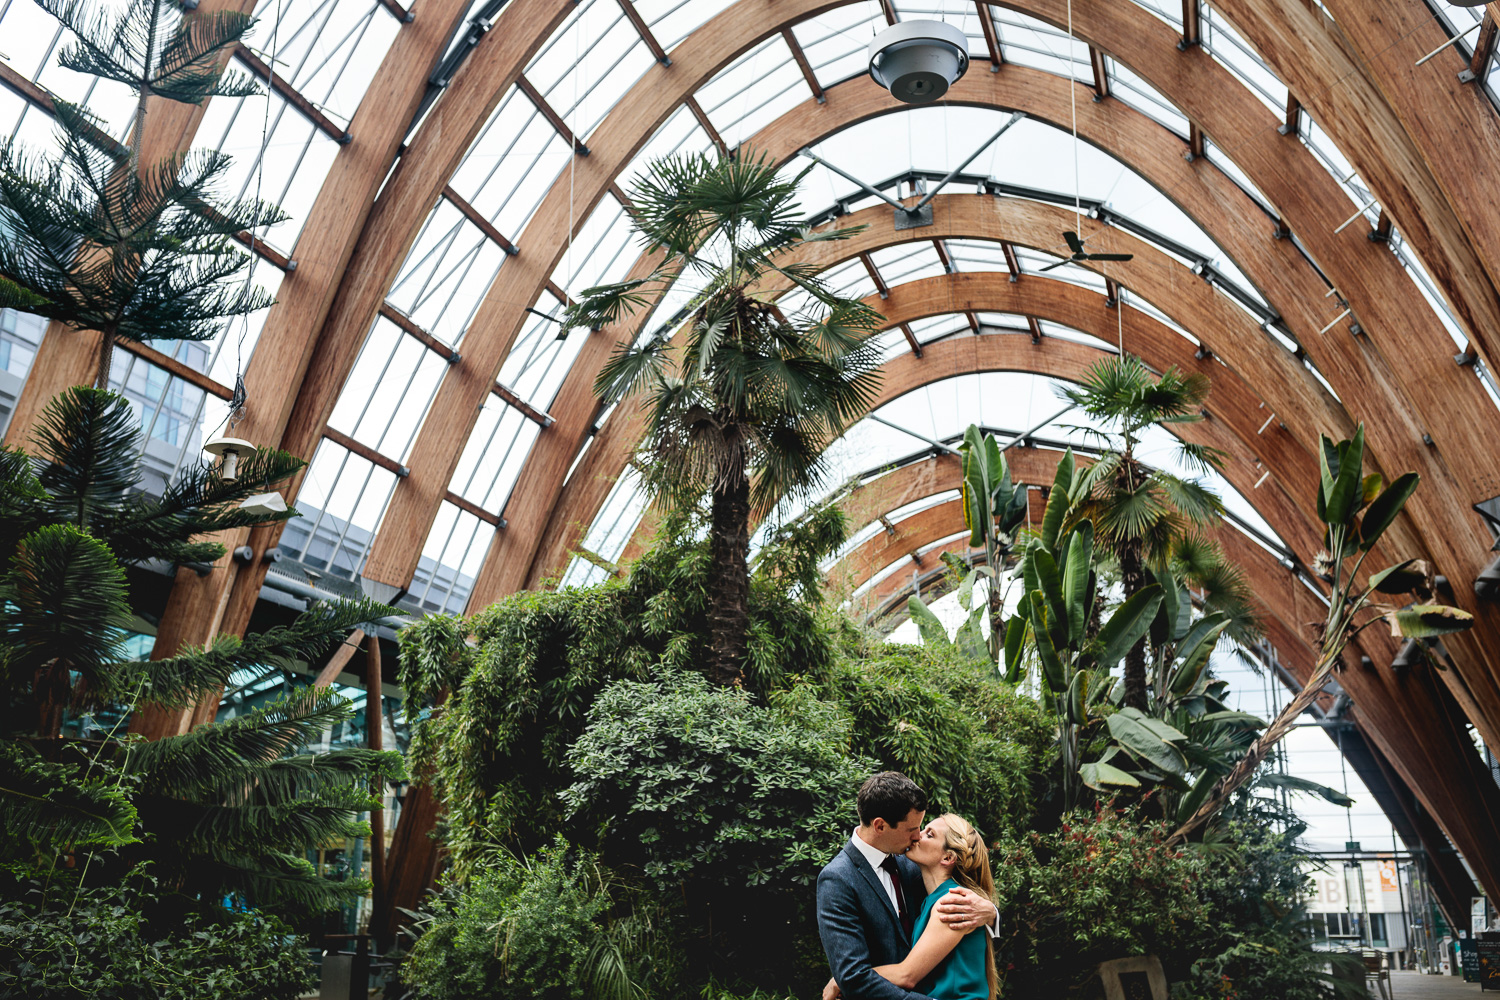 Couple kiss in front of lots of green foliage in Sheffield Winter Gardens during portrait session at wedding